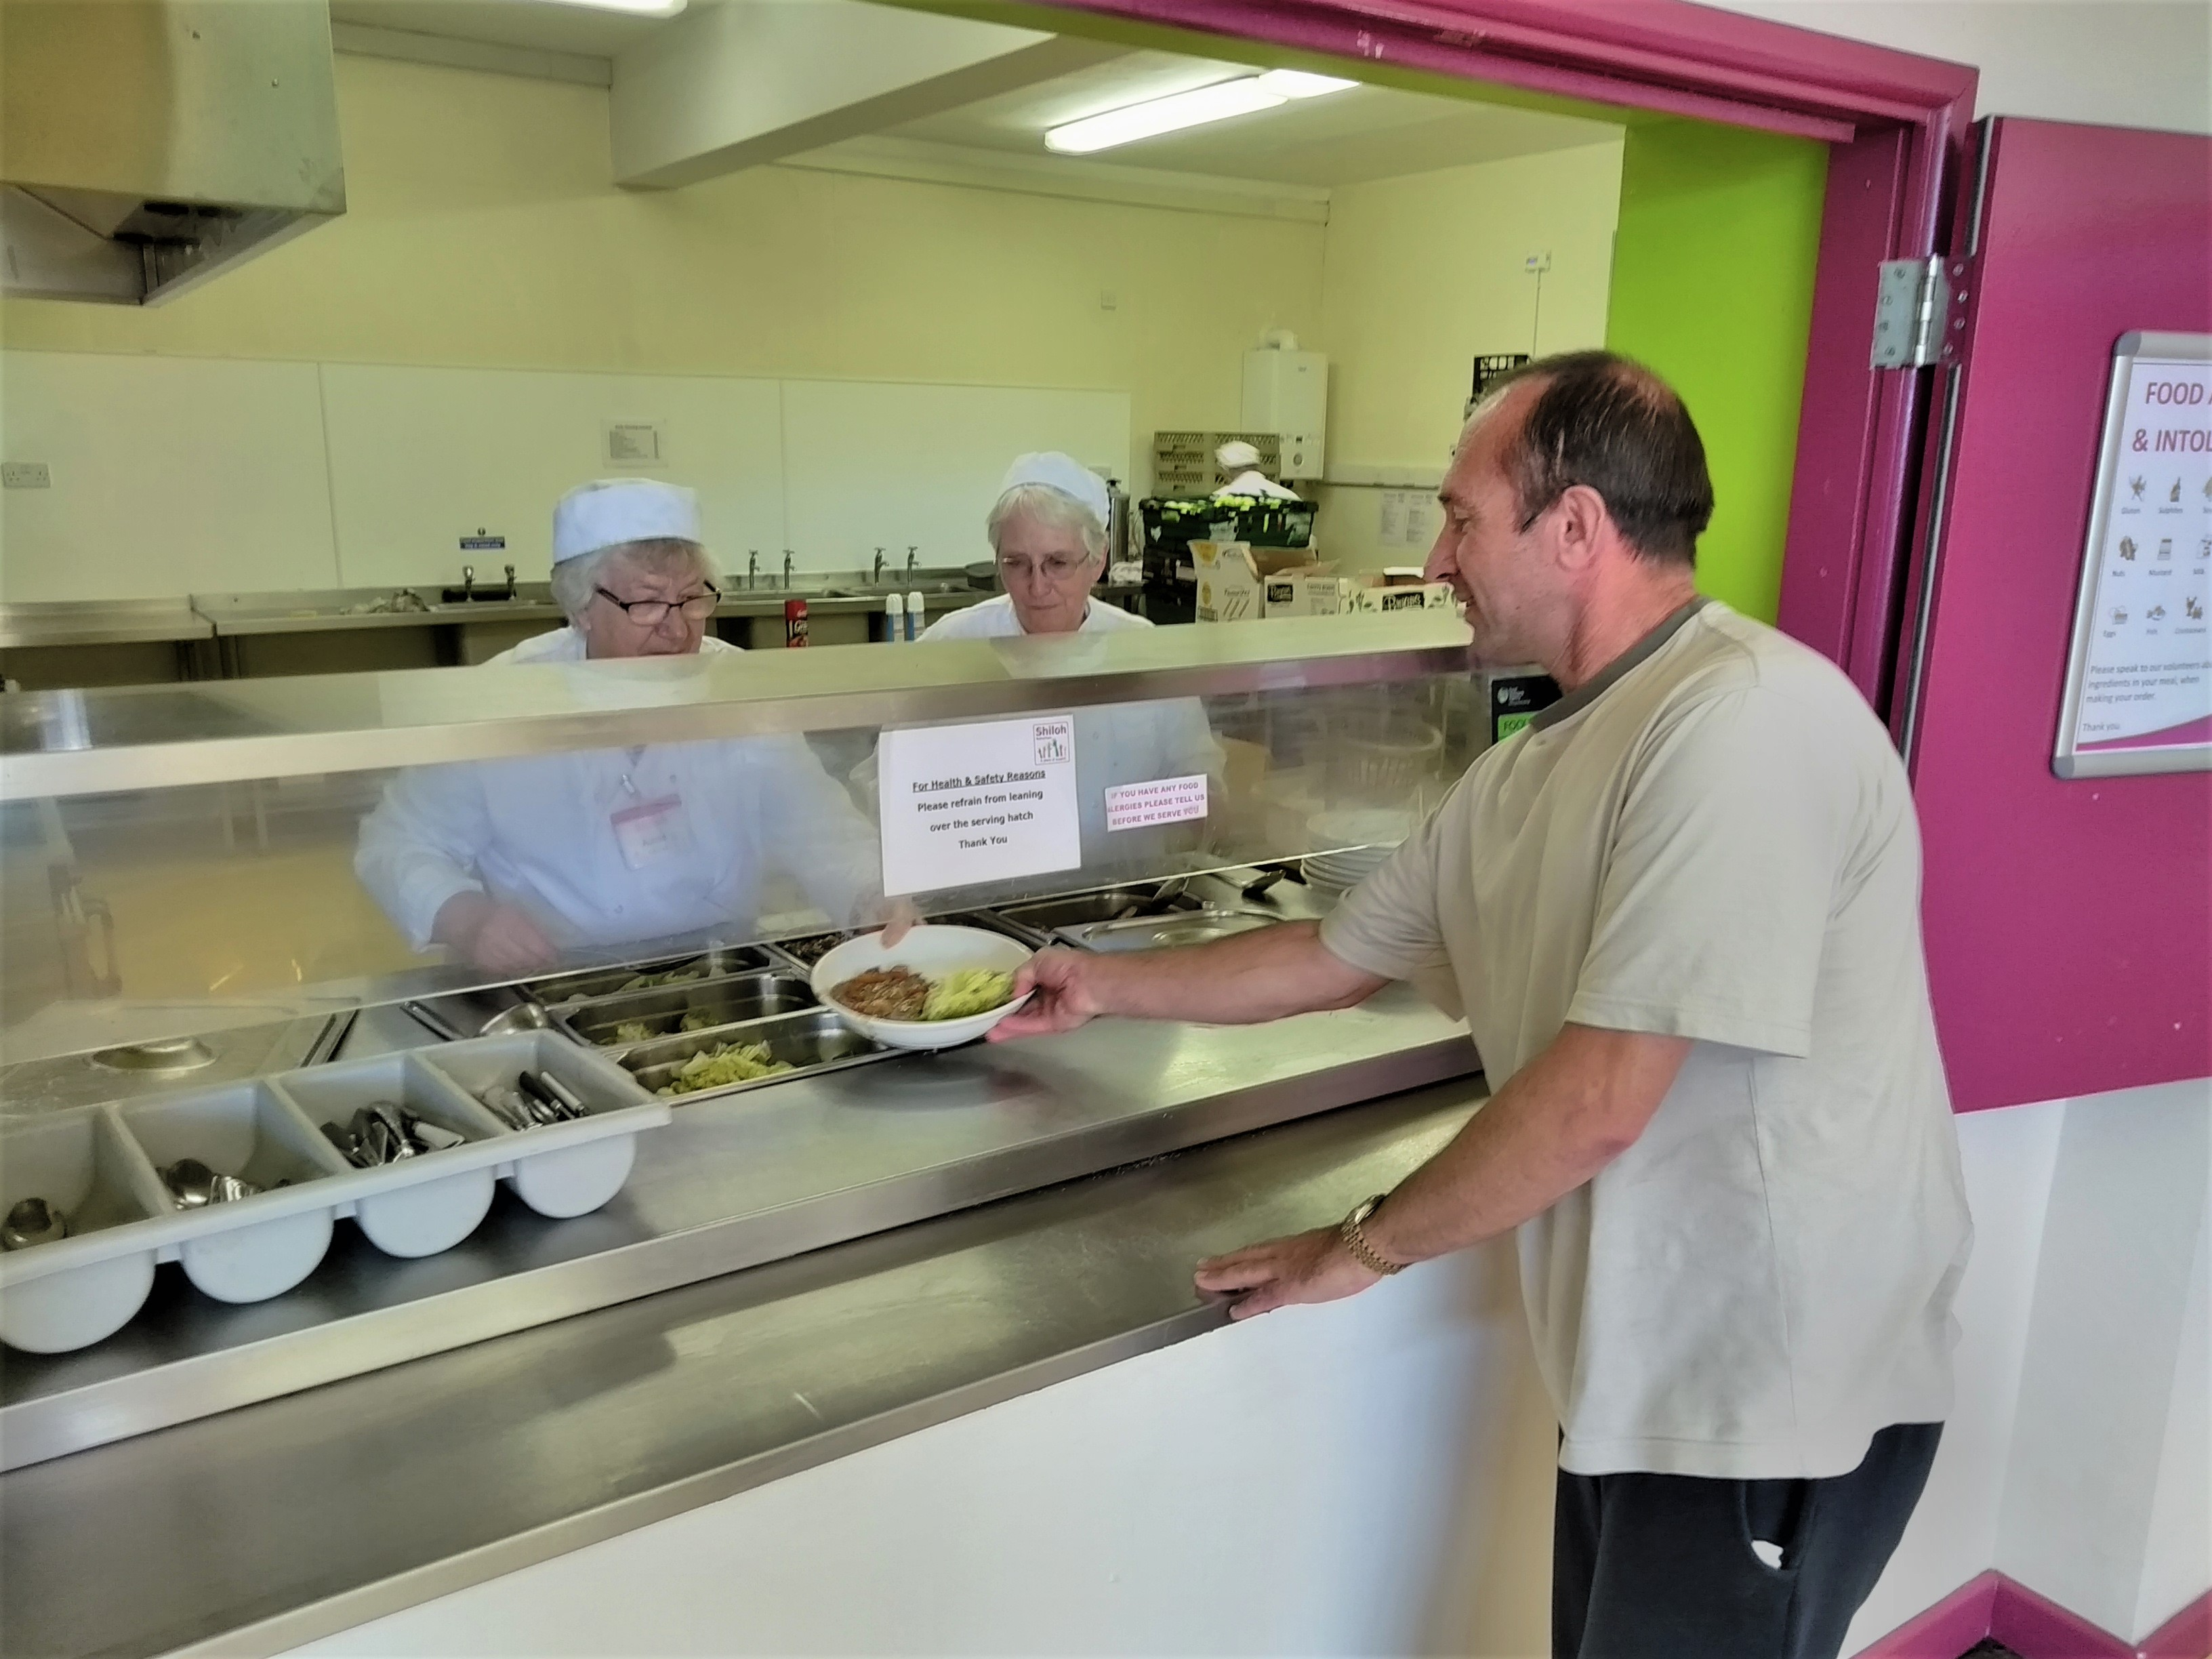 Shiloh provides 2 fresh hot meals a day